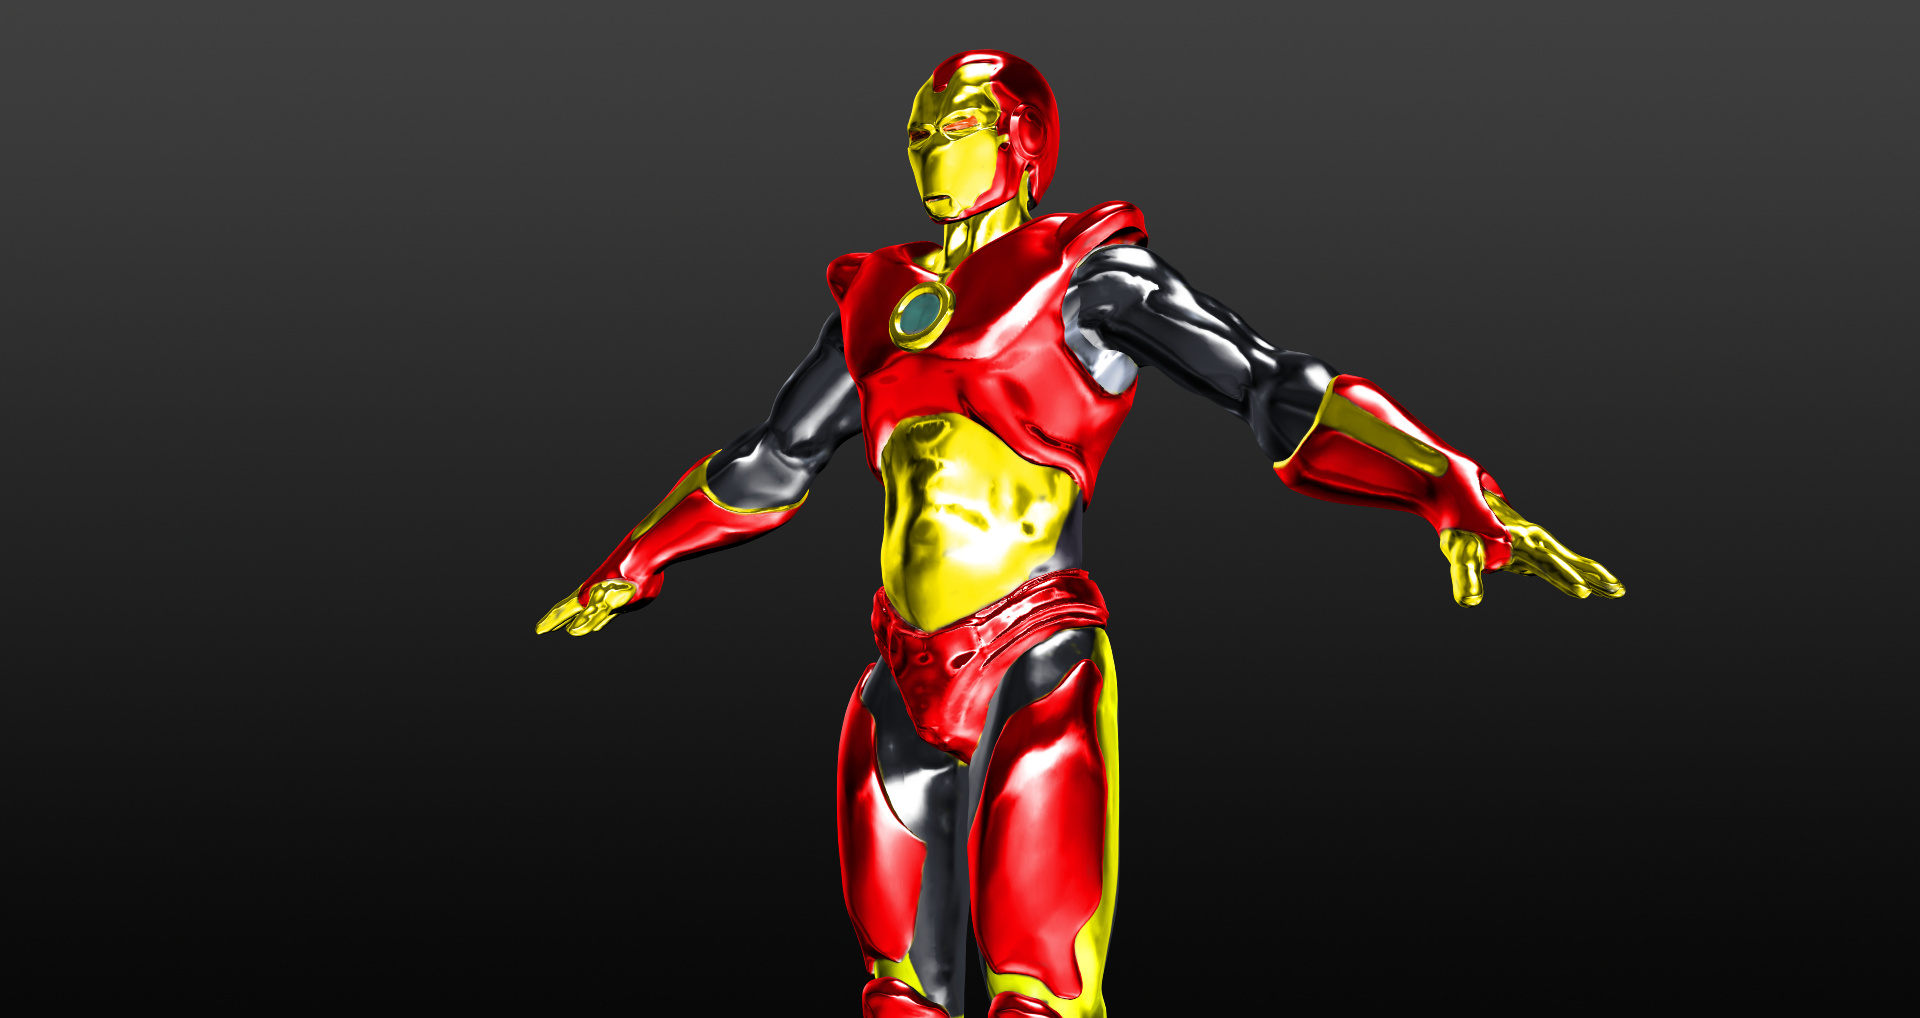 Ironman_Prova24_color3_3quarter_big01